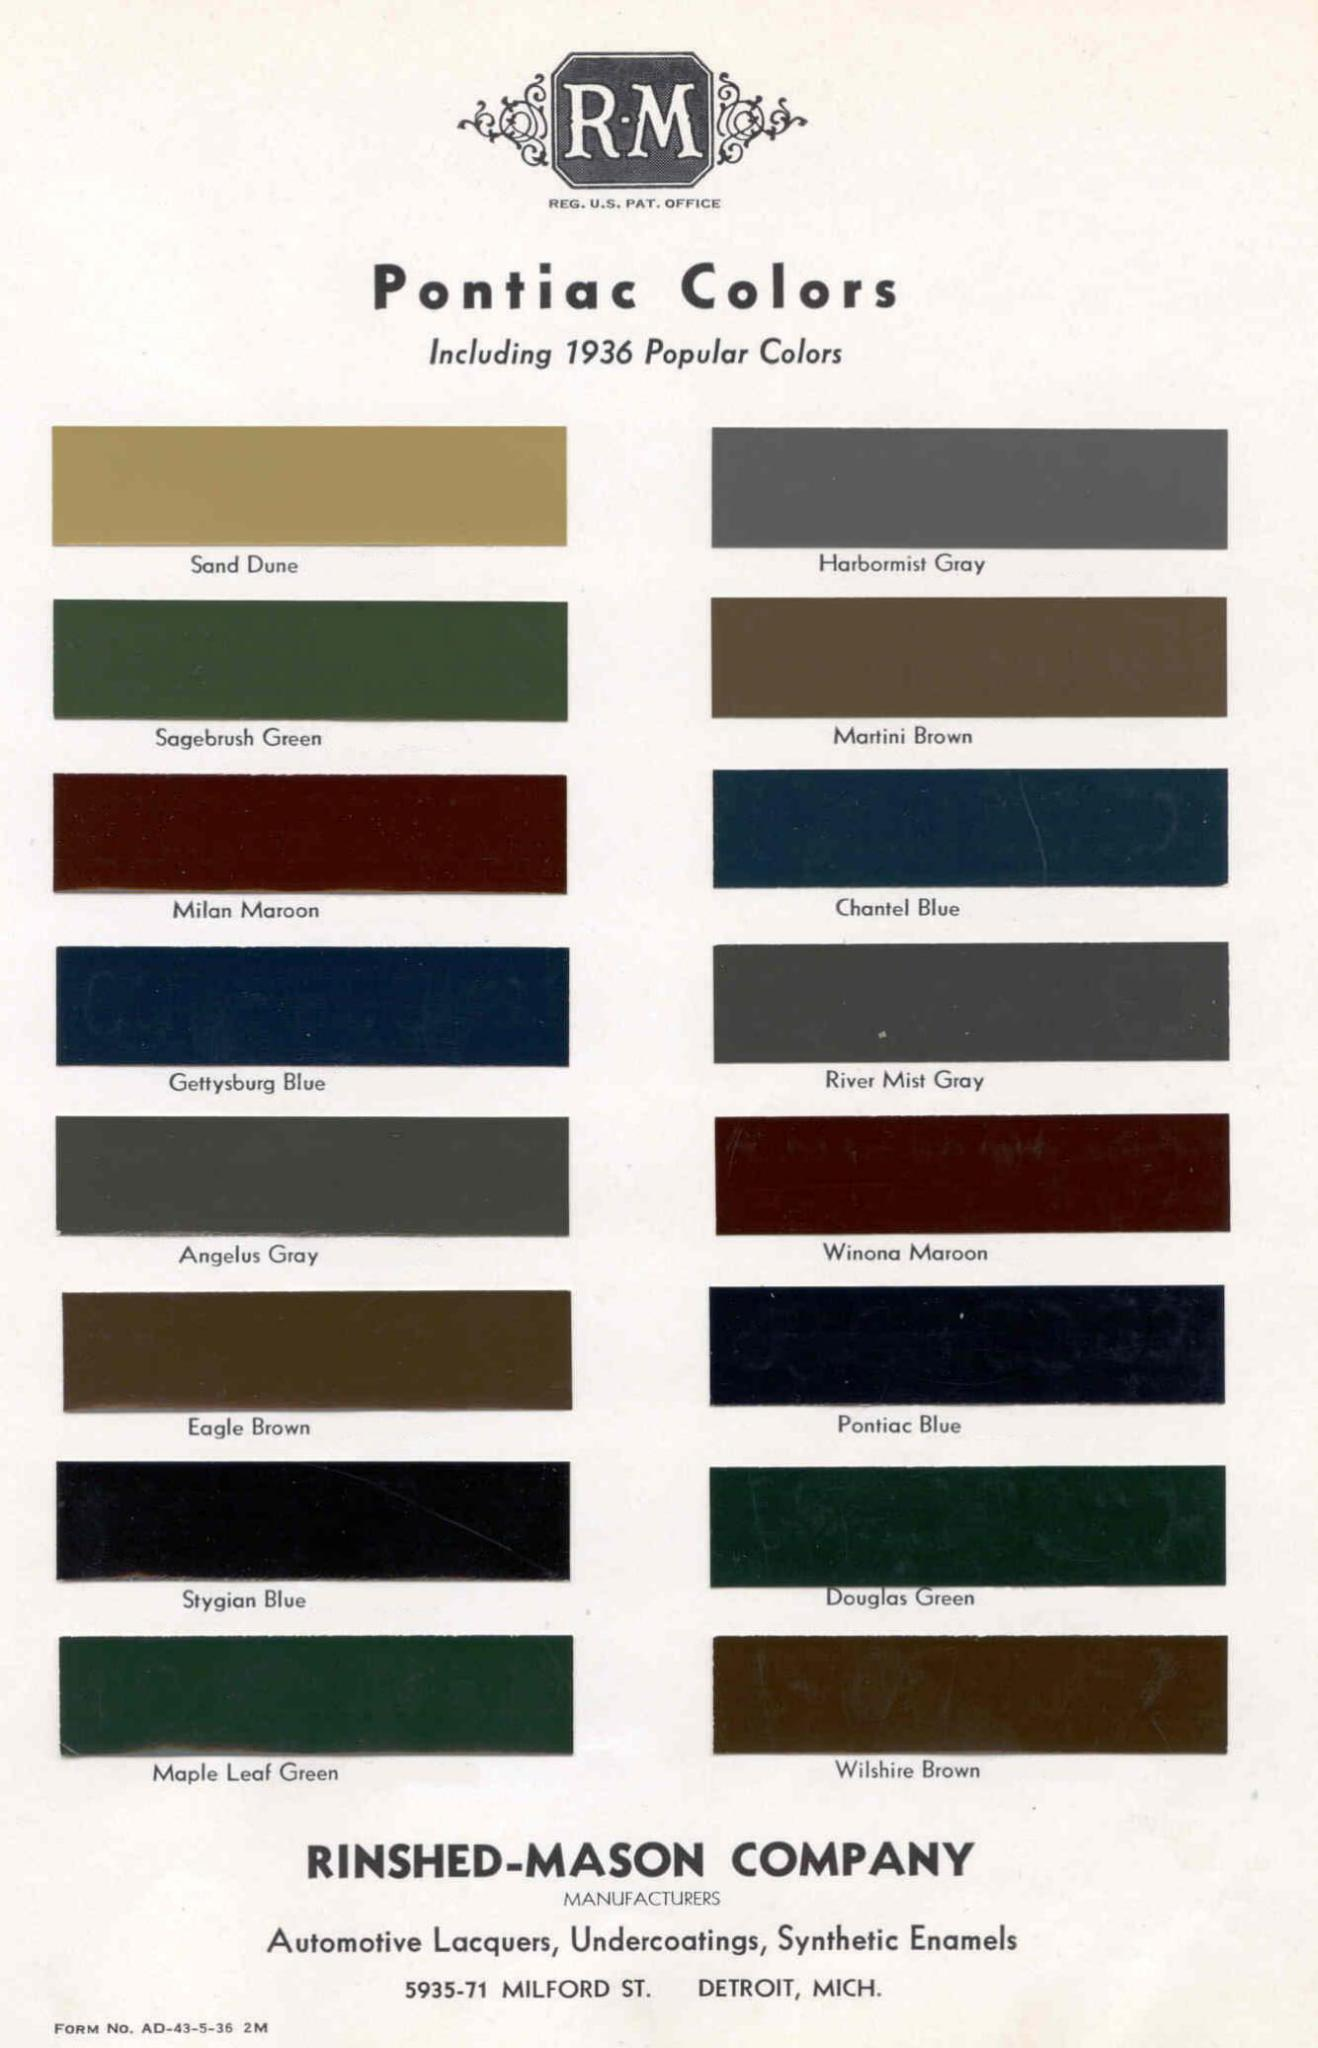 Color Code and Paint Color Chart for Pontiac for 1936